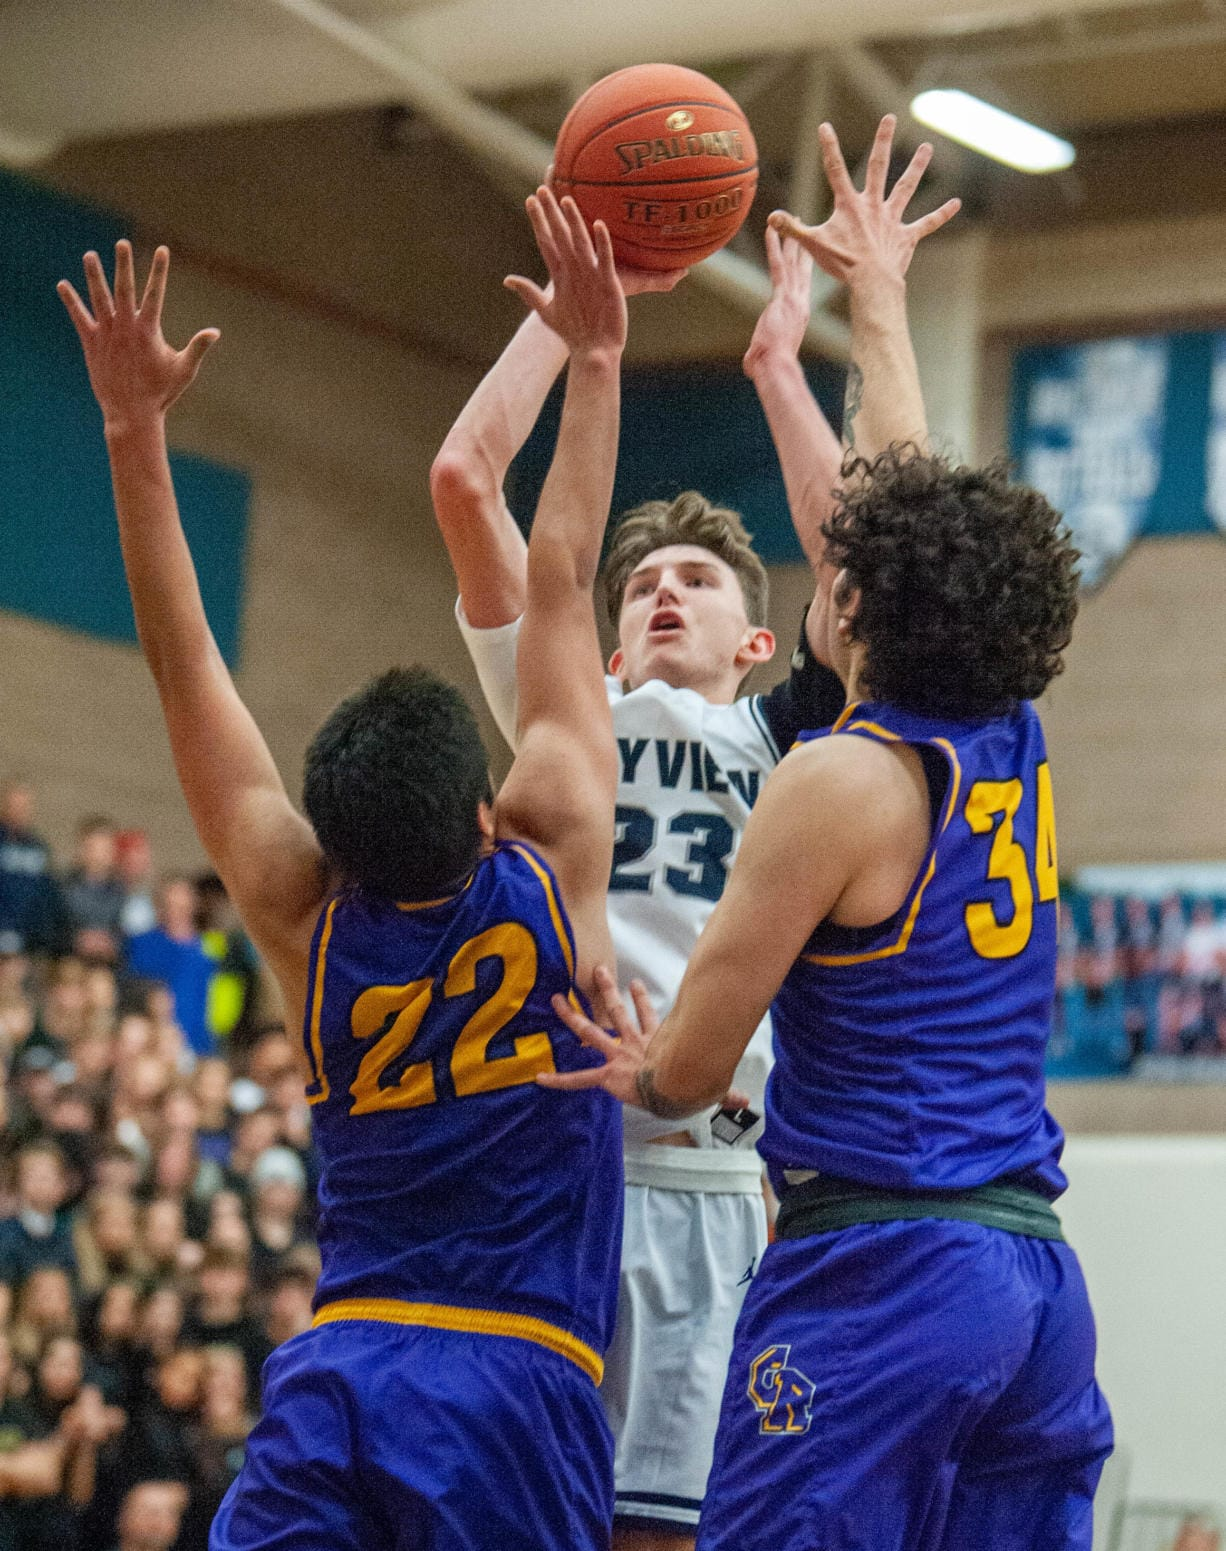 Skyview's Kyle Gruhler makes a game-clinching floater late in the fourth quarter over Columbia River's Marc Miranda (22) and Dylan Valdez (34).